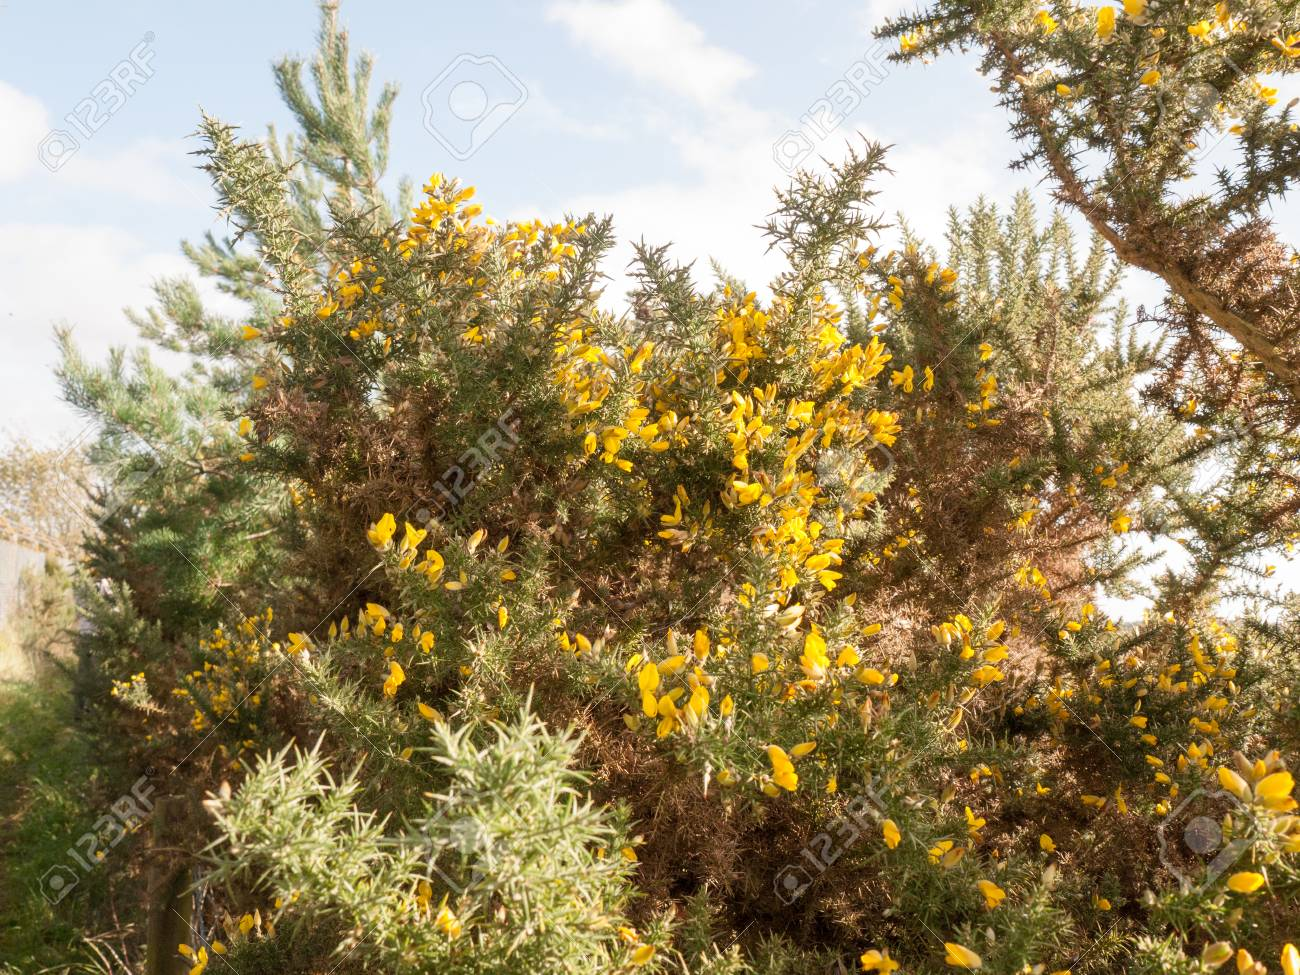 Beautiful Stunning Growing Yellow Bright Gorse Flowers On Spiky